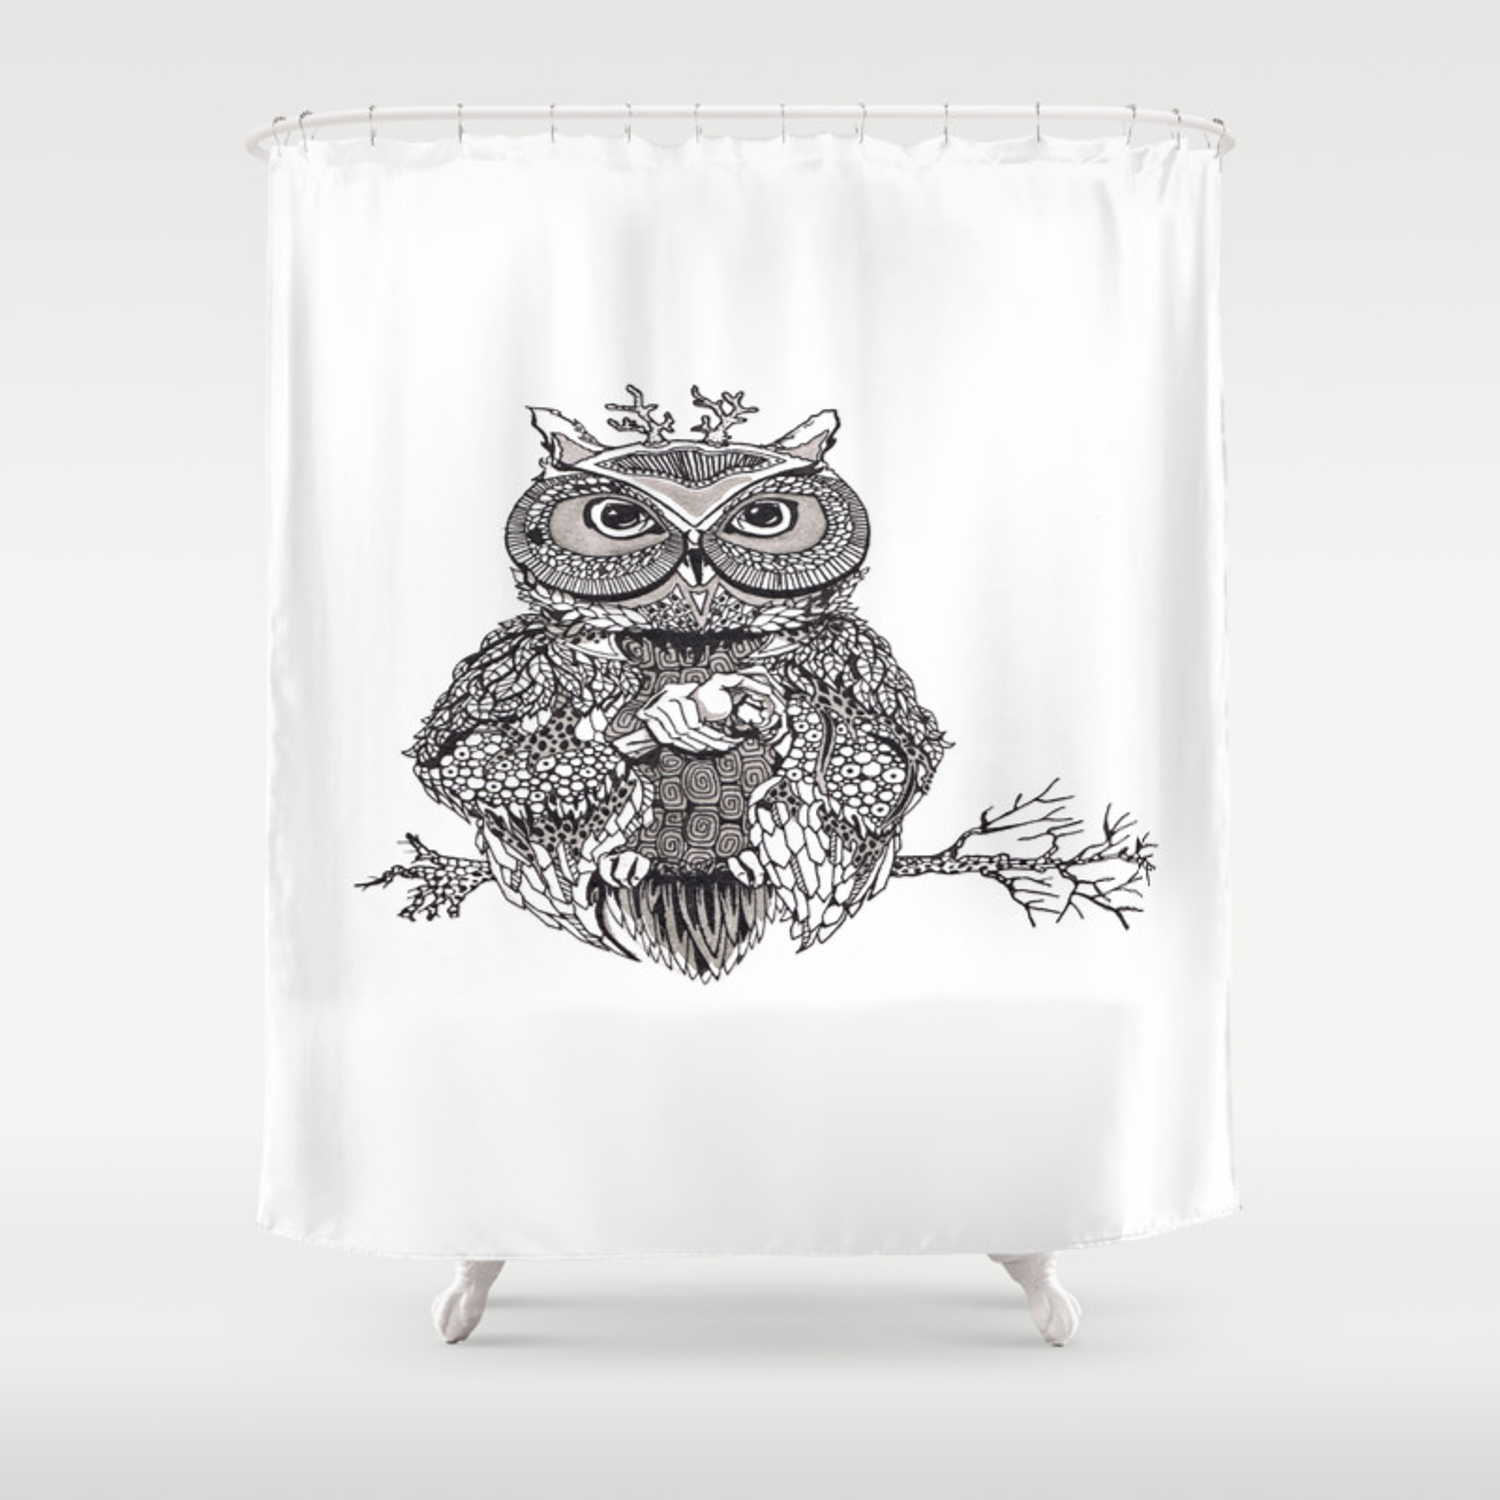 The Owl The Eagle Owl Shower Curtain